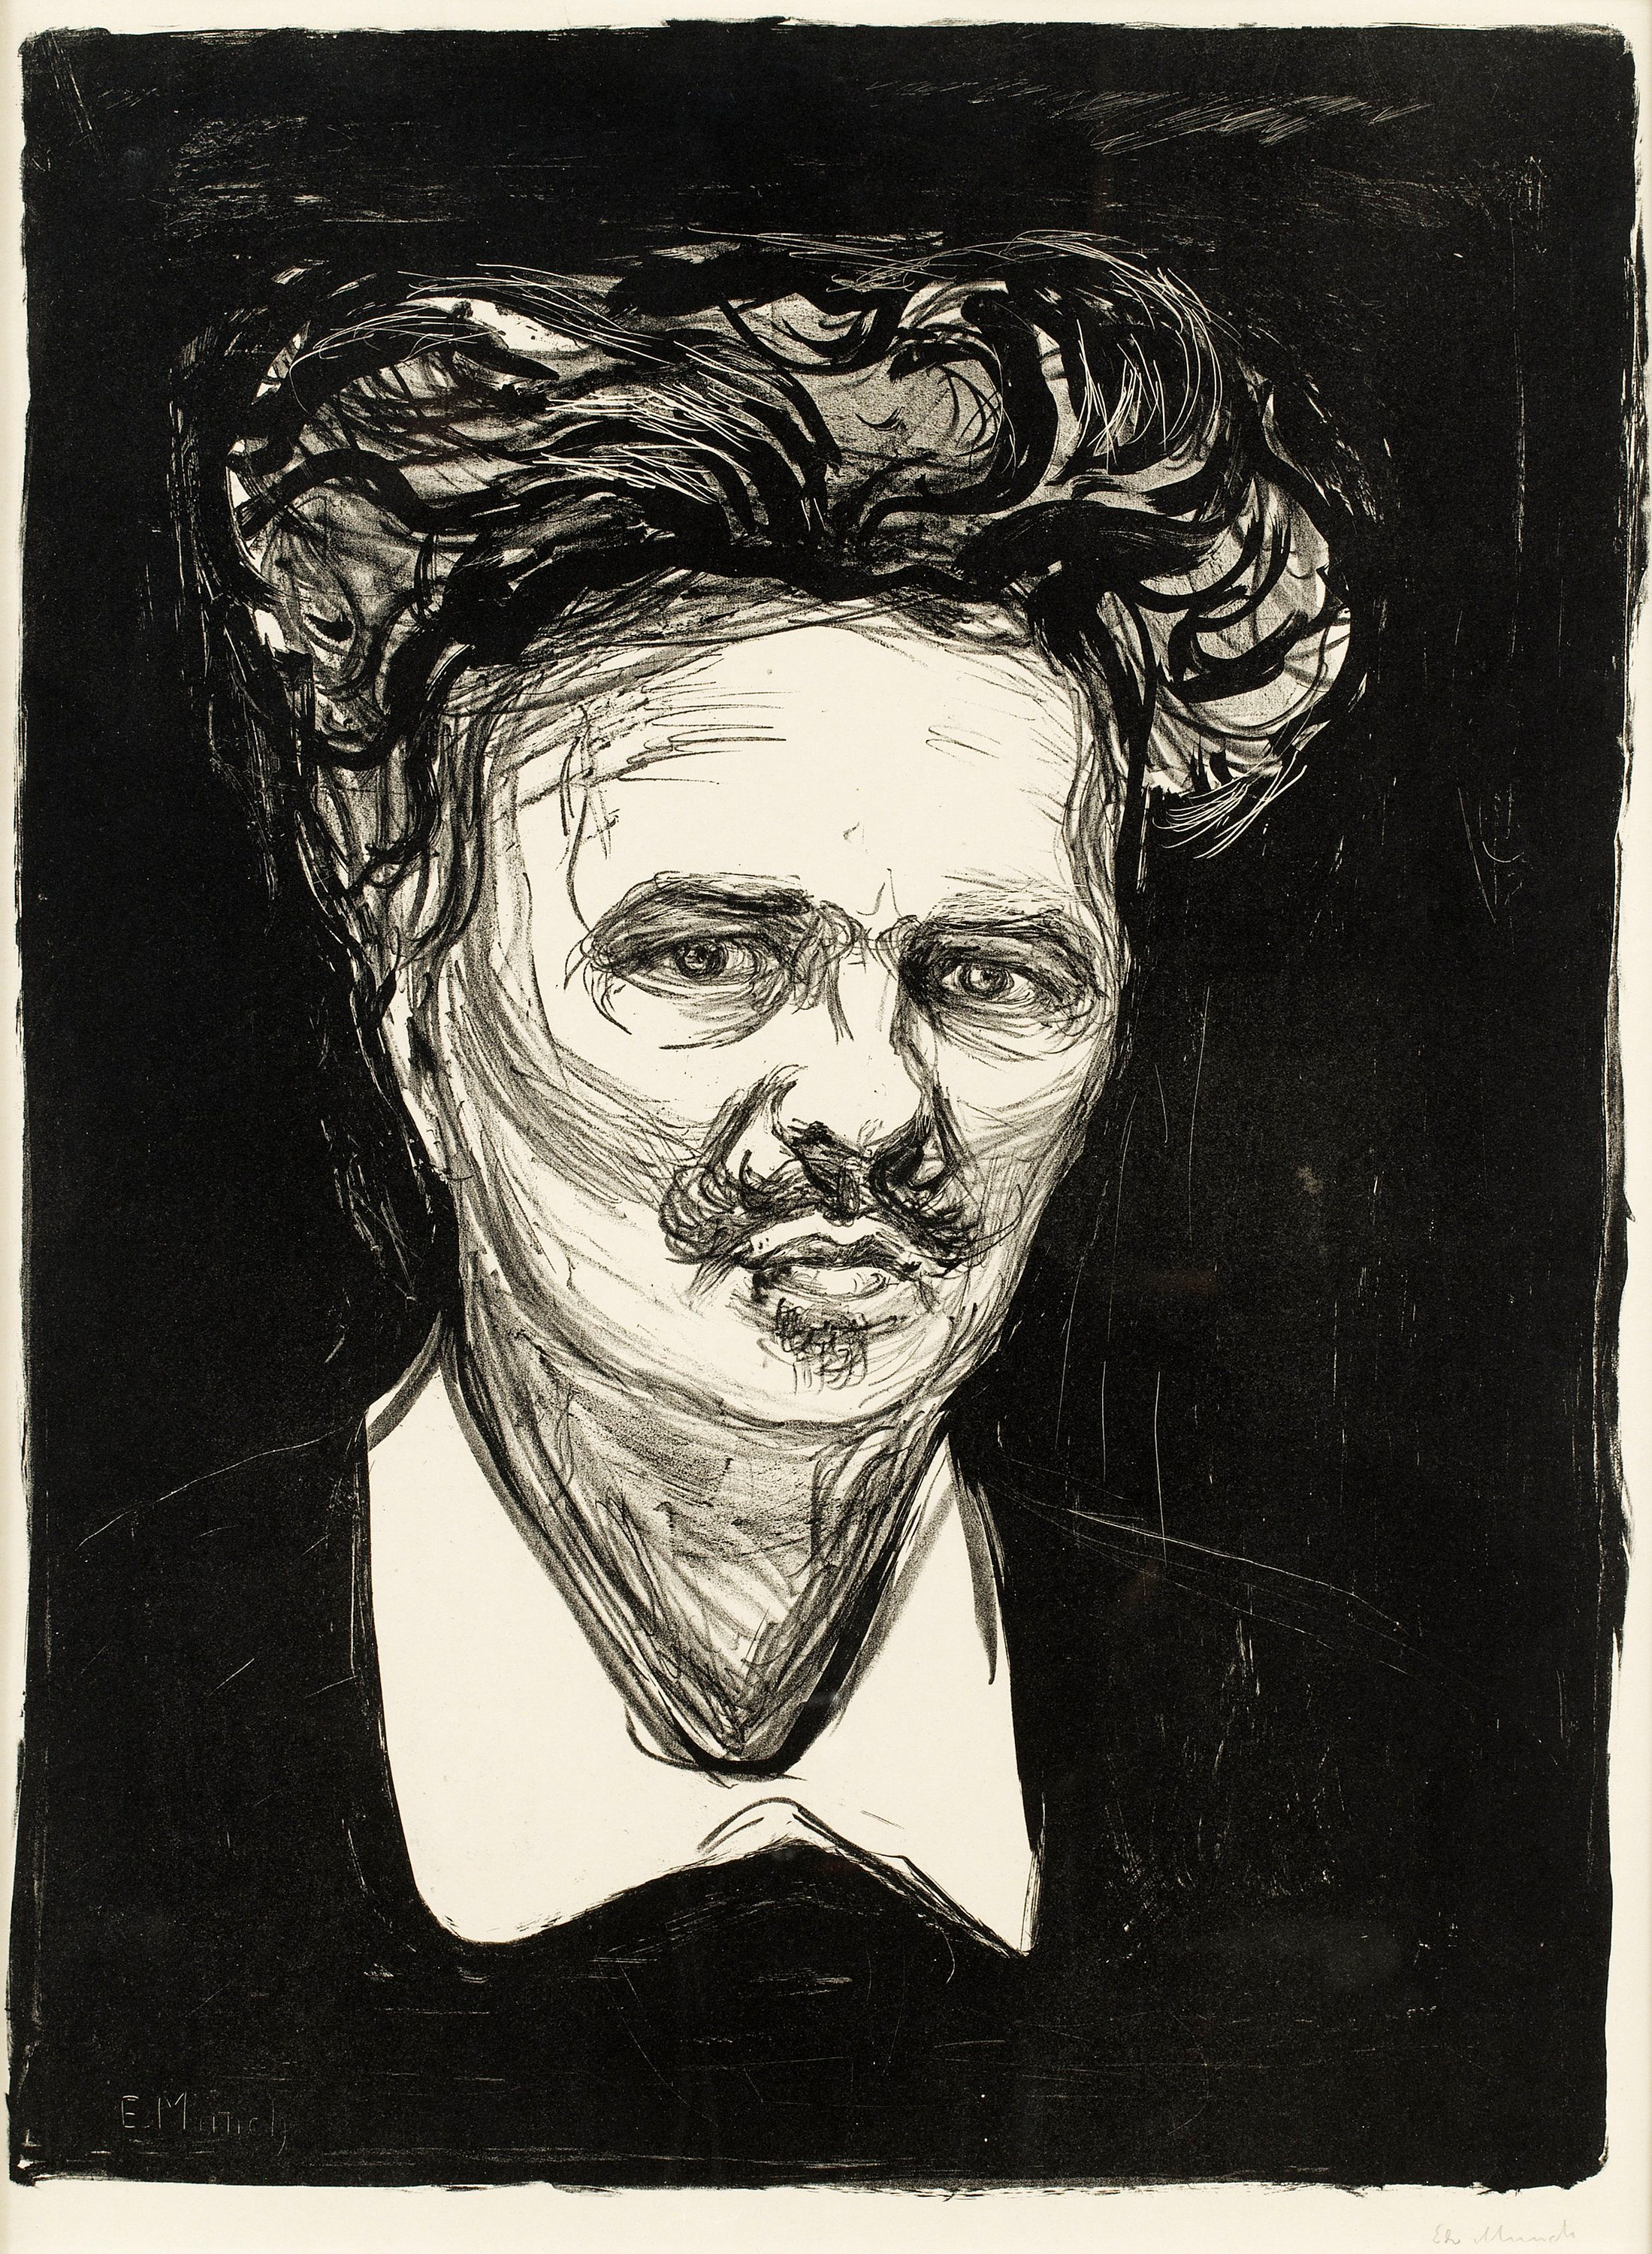 august strindberg August strindberg is credited as writer and source material.